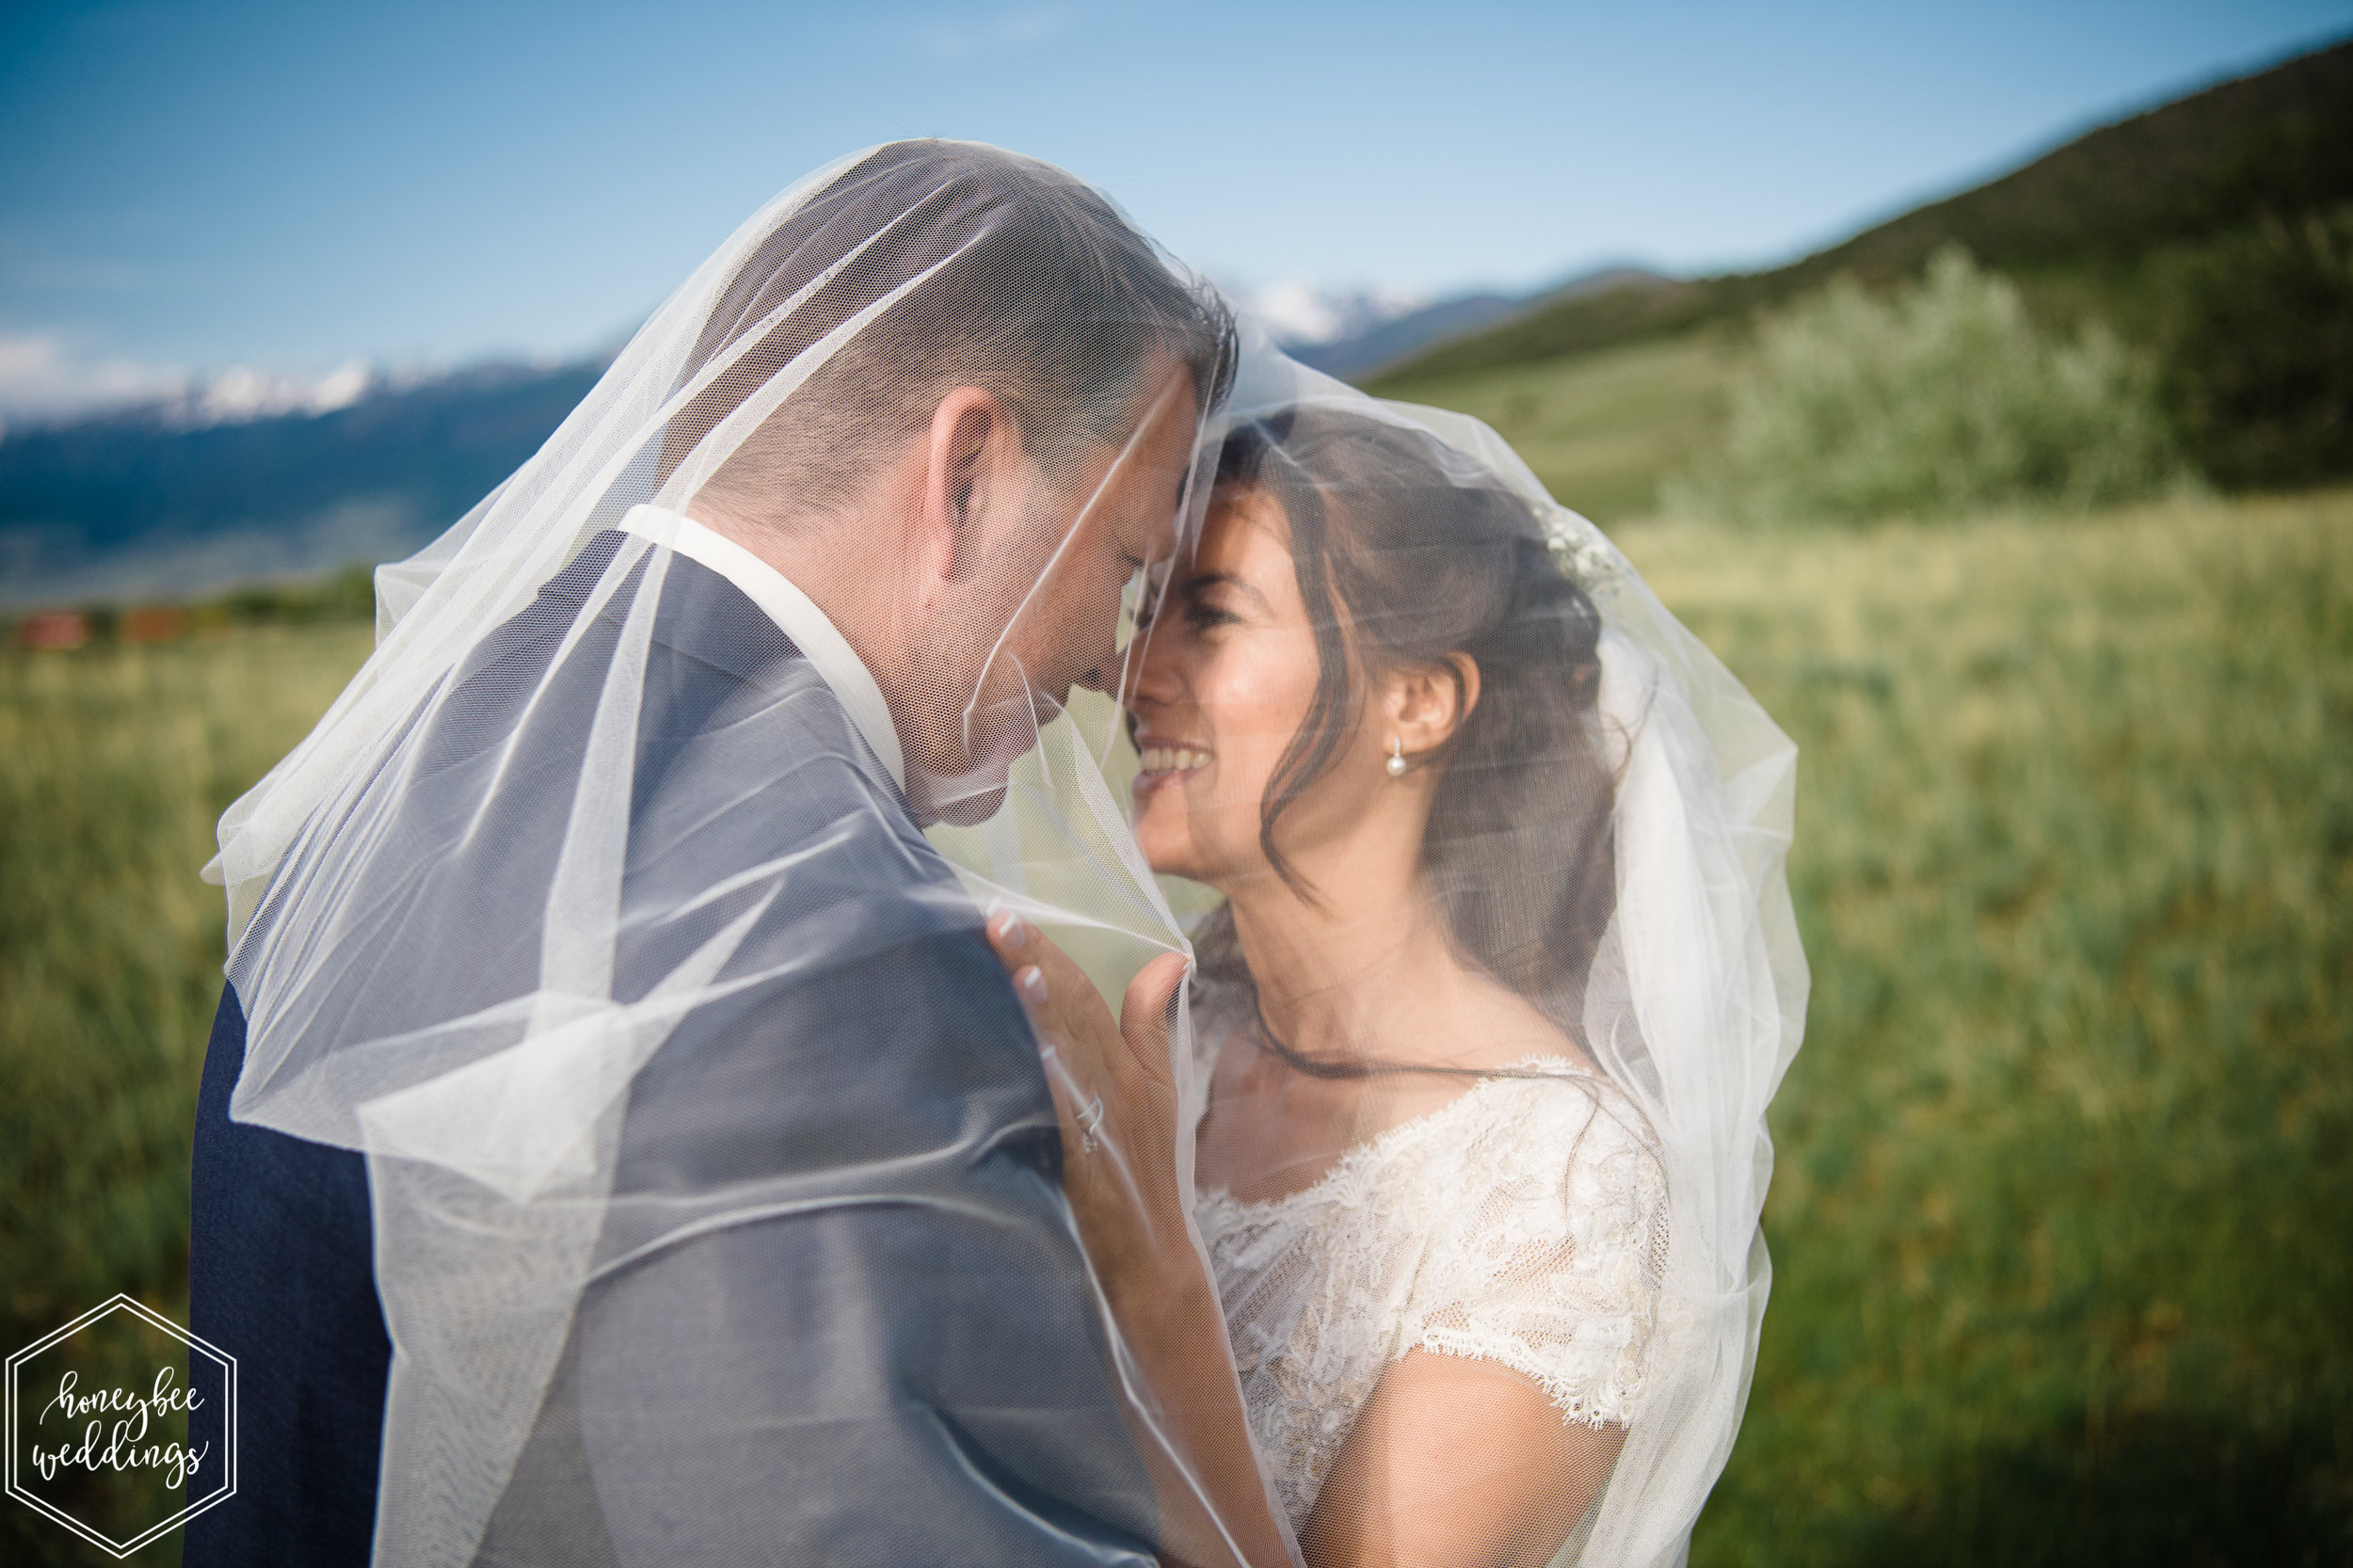 015Montana wedding photographer videographer_Chico hot springs wedding_Honeybee Weddings_Claudia & Bill_June 03, 2019-546.jpg